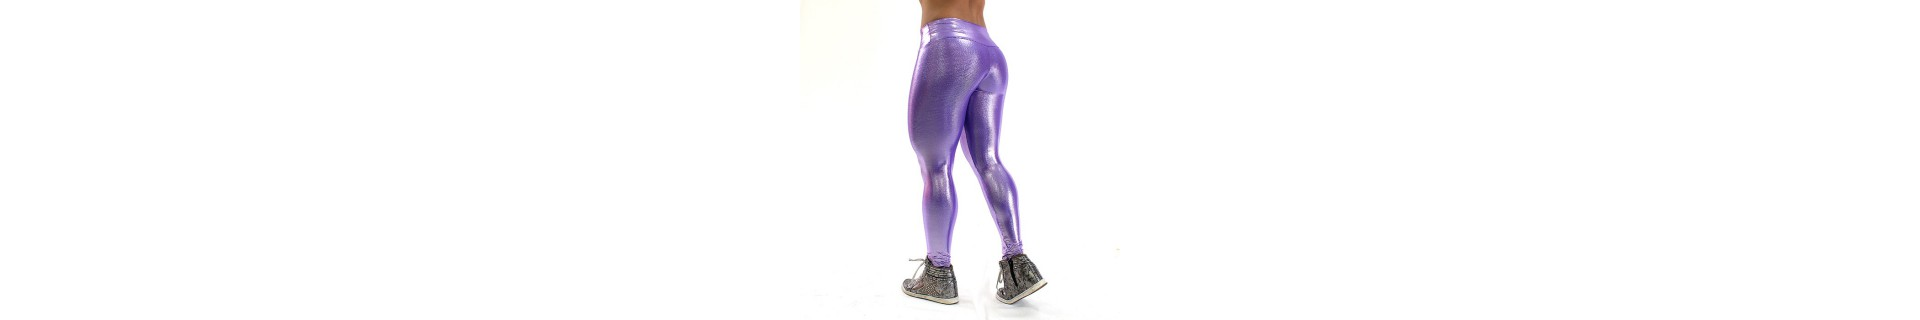 Shiny leggings. Elastic and breathable even in fake leather and latex.